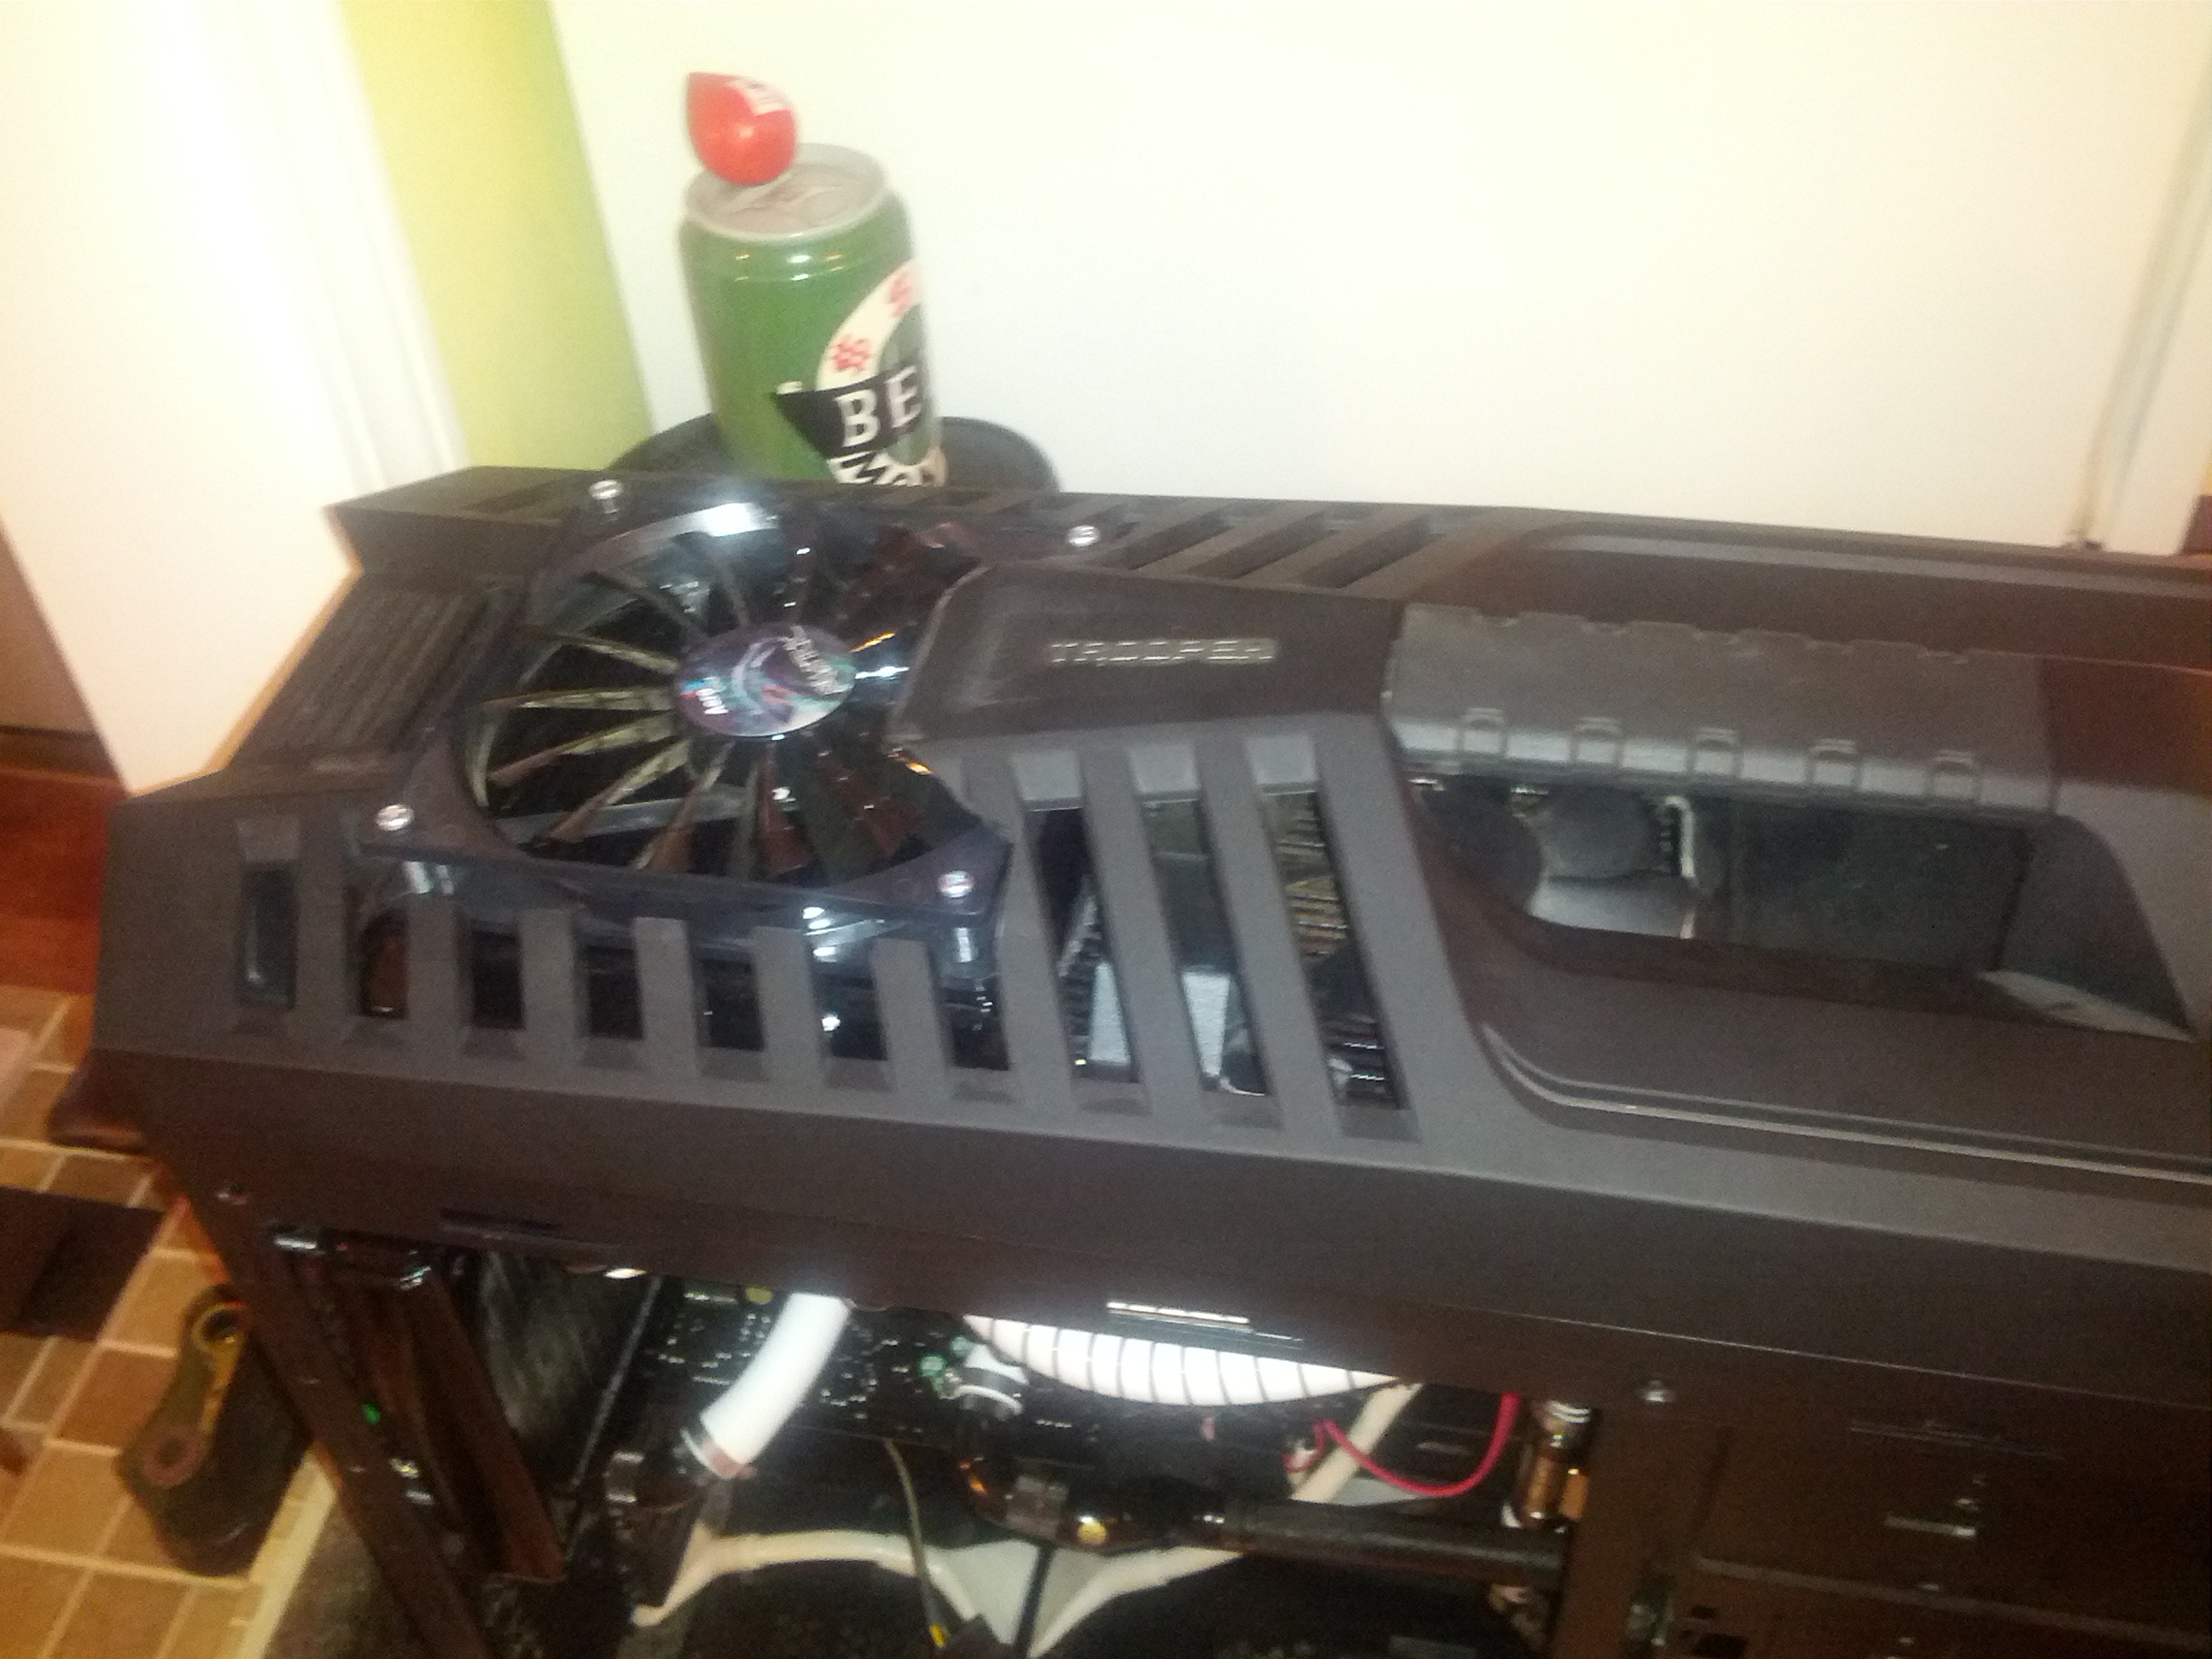 the 140mm push fan doesn't look to bad through the top of the case